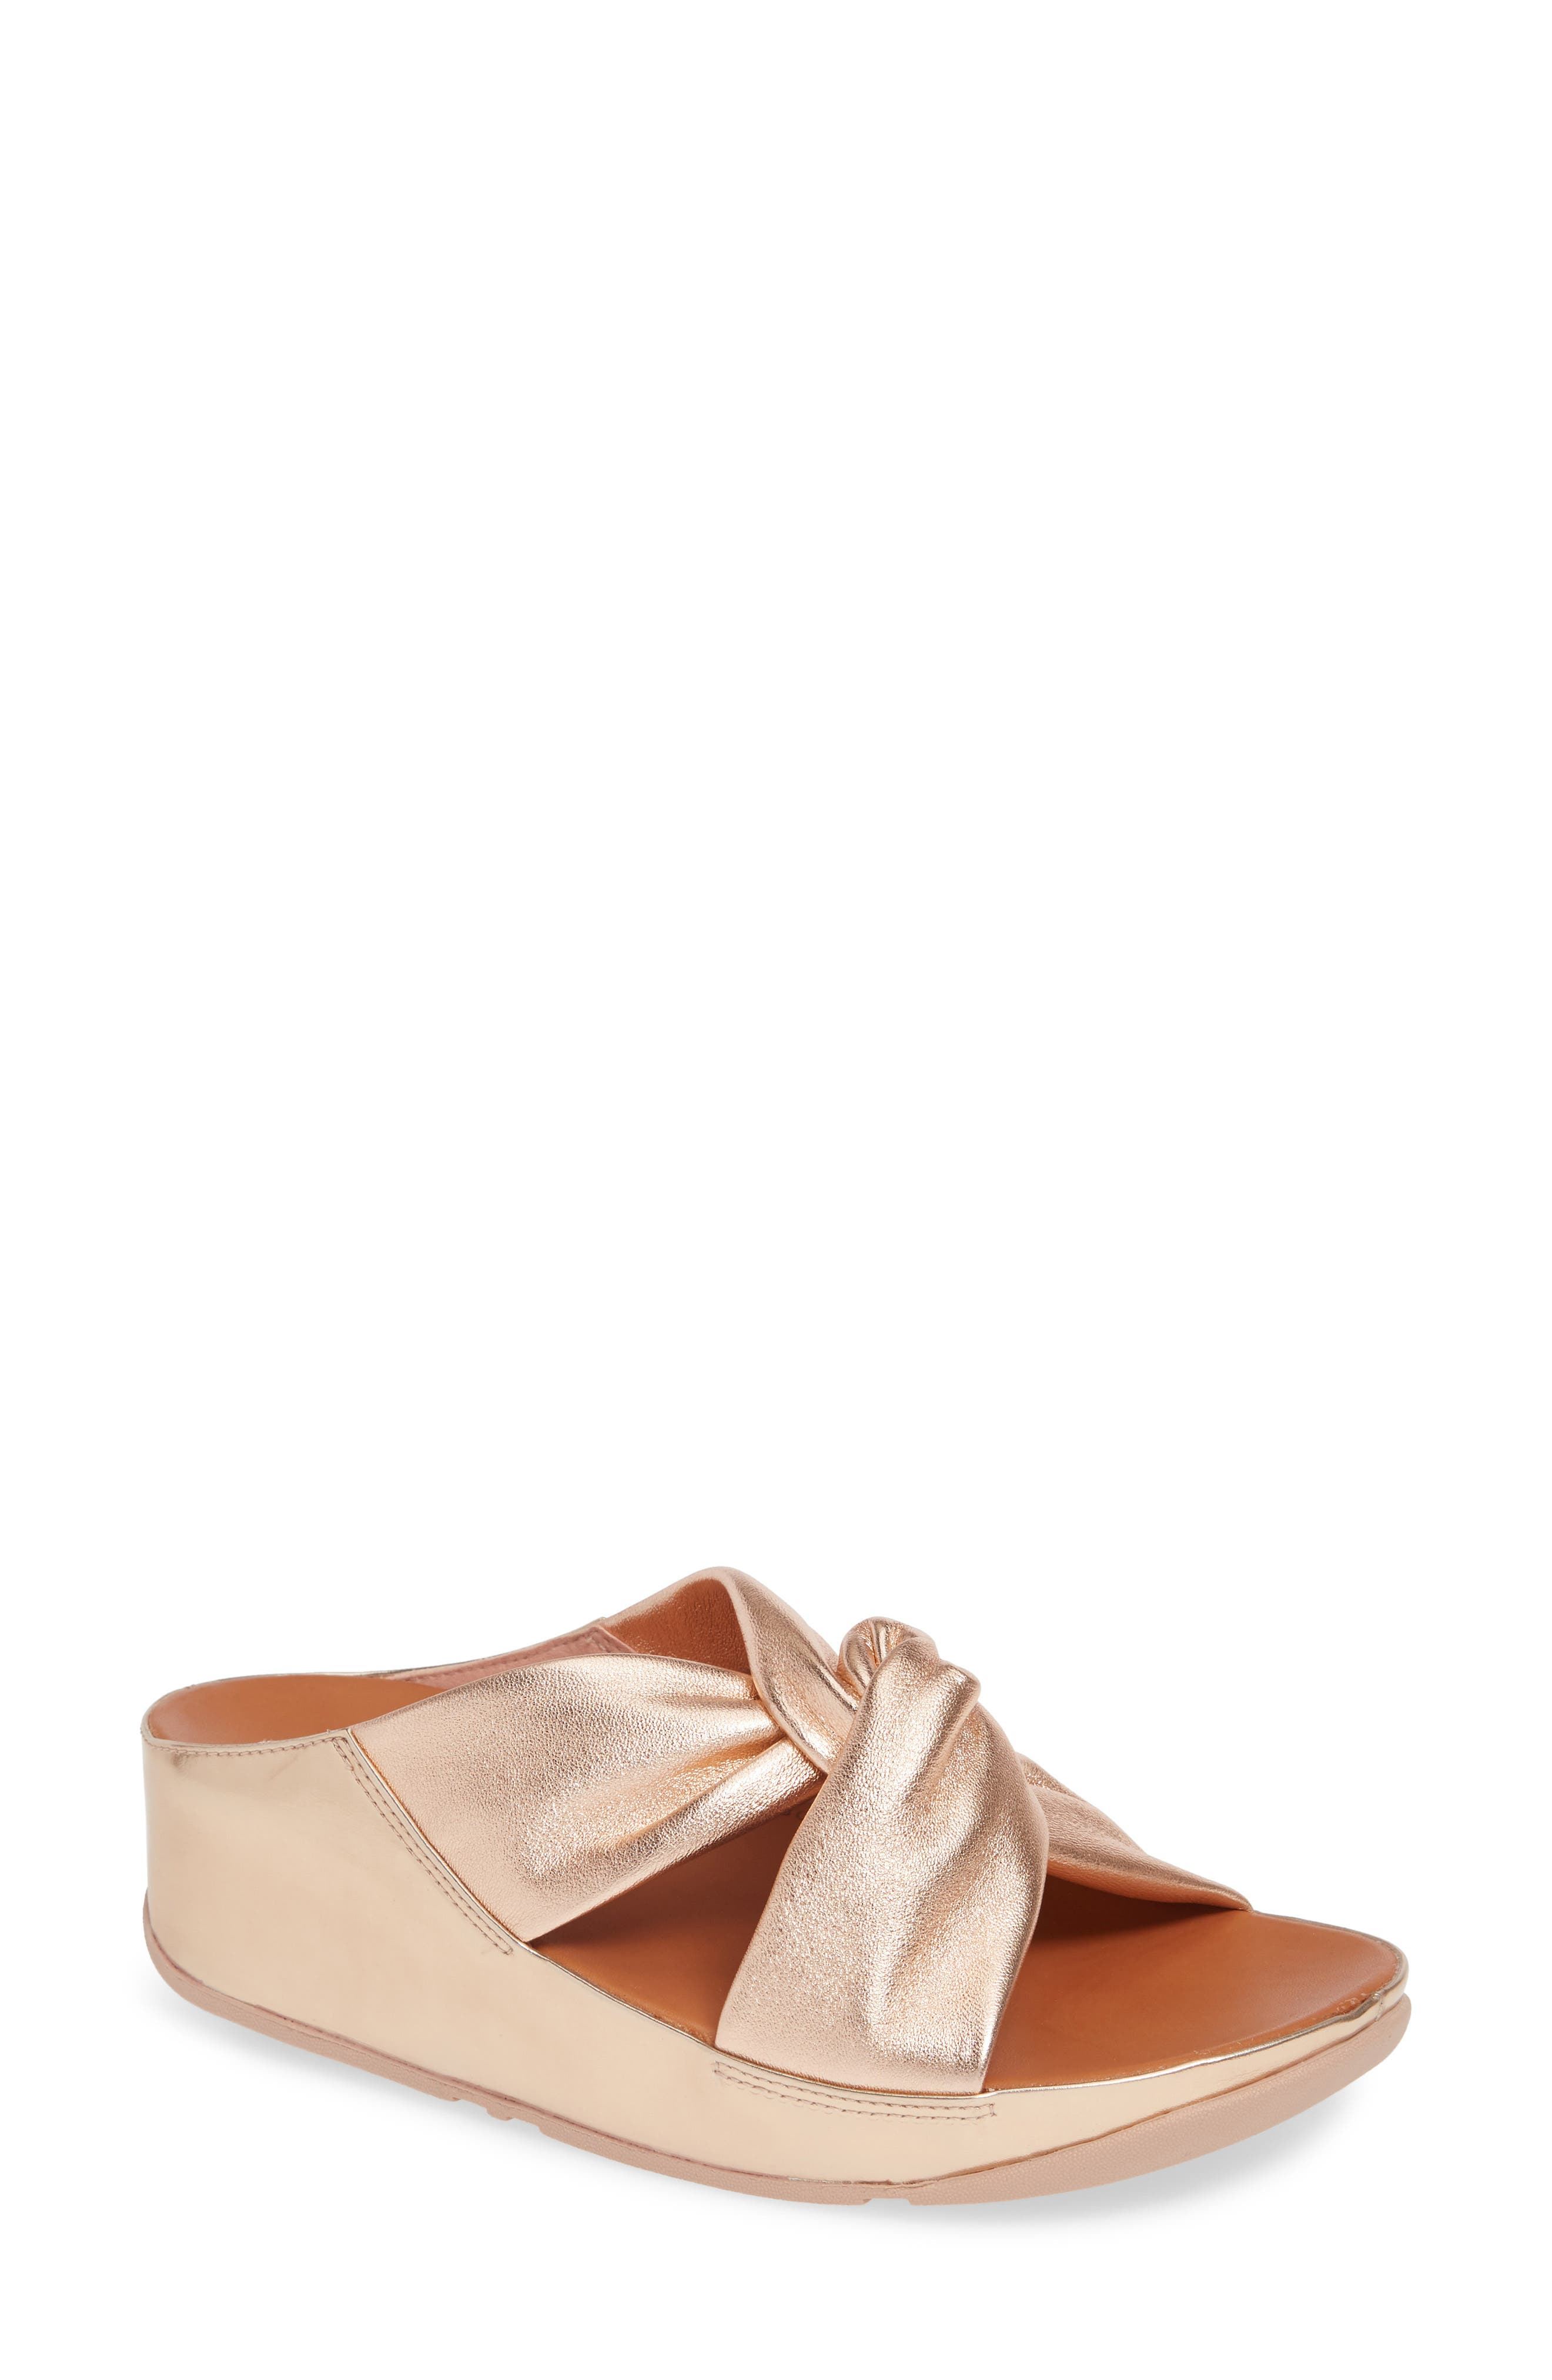 Image of Fitflop Twiss Leather Slide Sandal